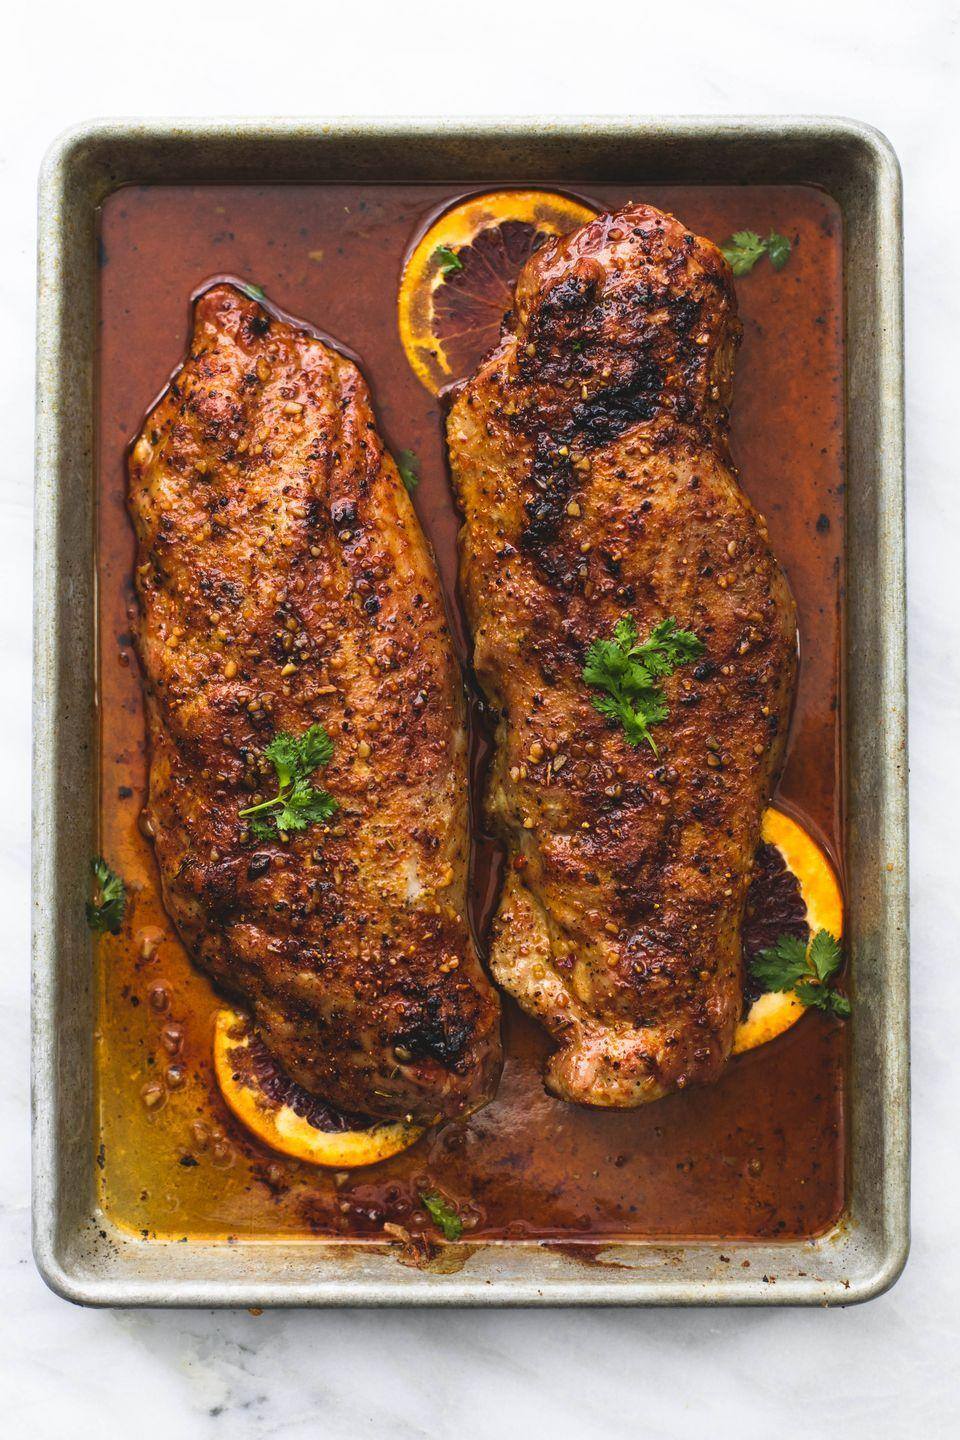 "<p>You deserve something fancy on a weeknight.</p><p>Get the recipe from <a href=""https://www.delish.com/cooking/recipe-ideas/recipes/a52049/glazed-pork-tenderloin-recipe/"" rel=""nofollow noopener"" target=""_blank"" data-ylk=""slk:Delish"" class=""link rapid-noclick-resp"">Delish</a>.</p>"